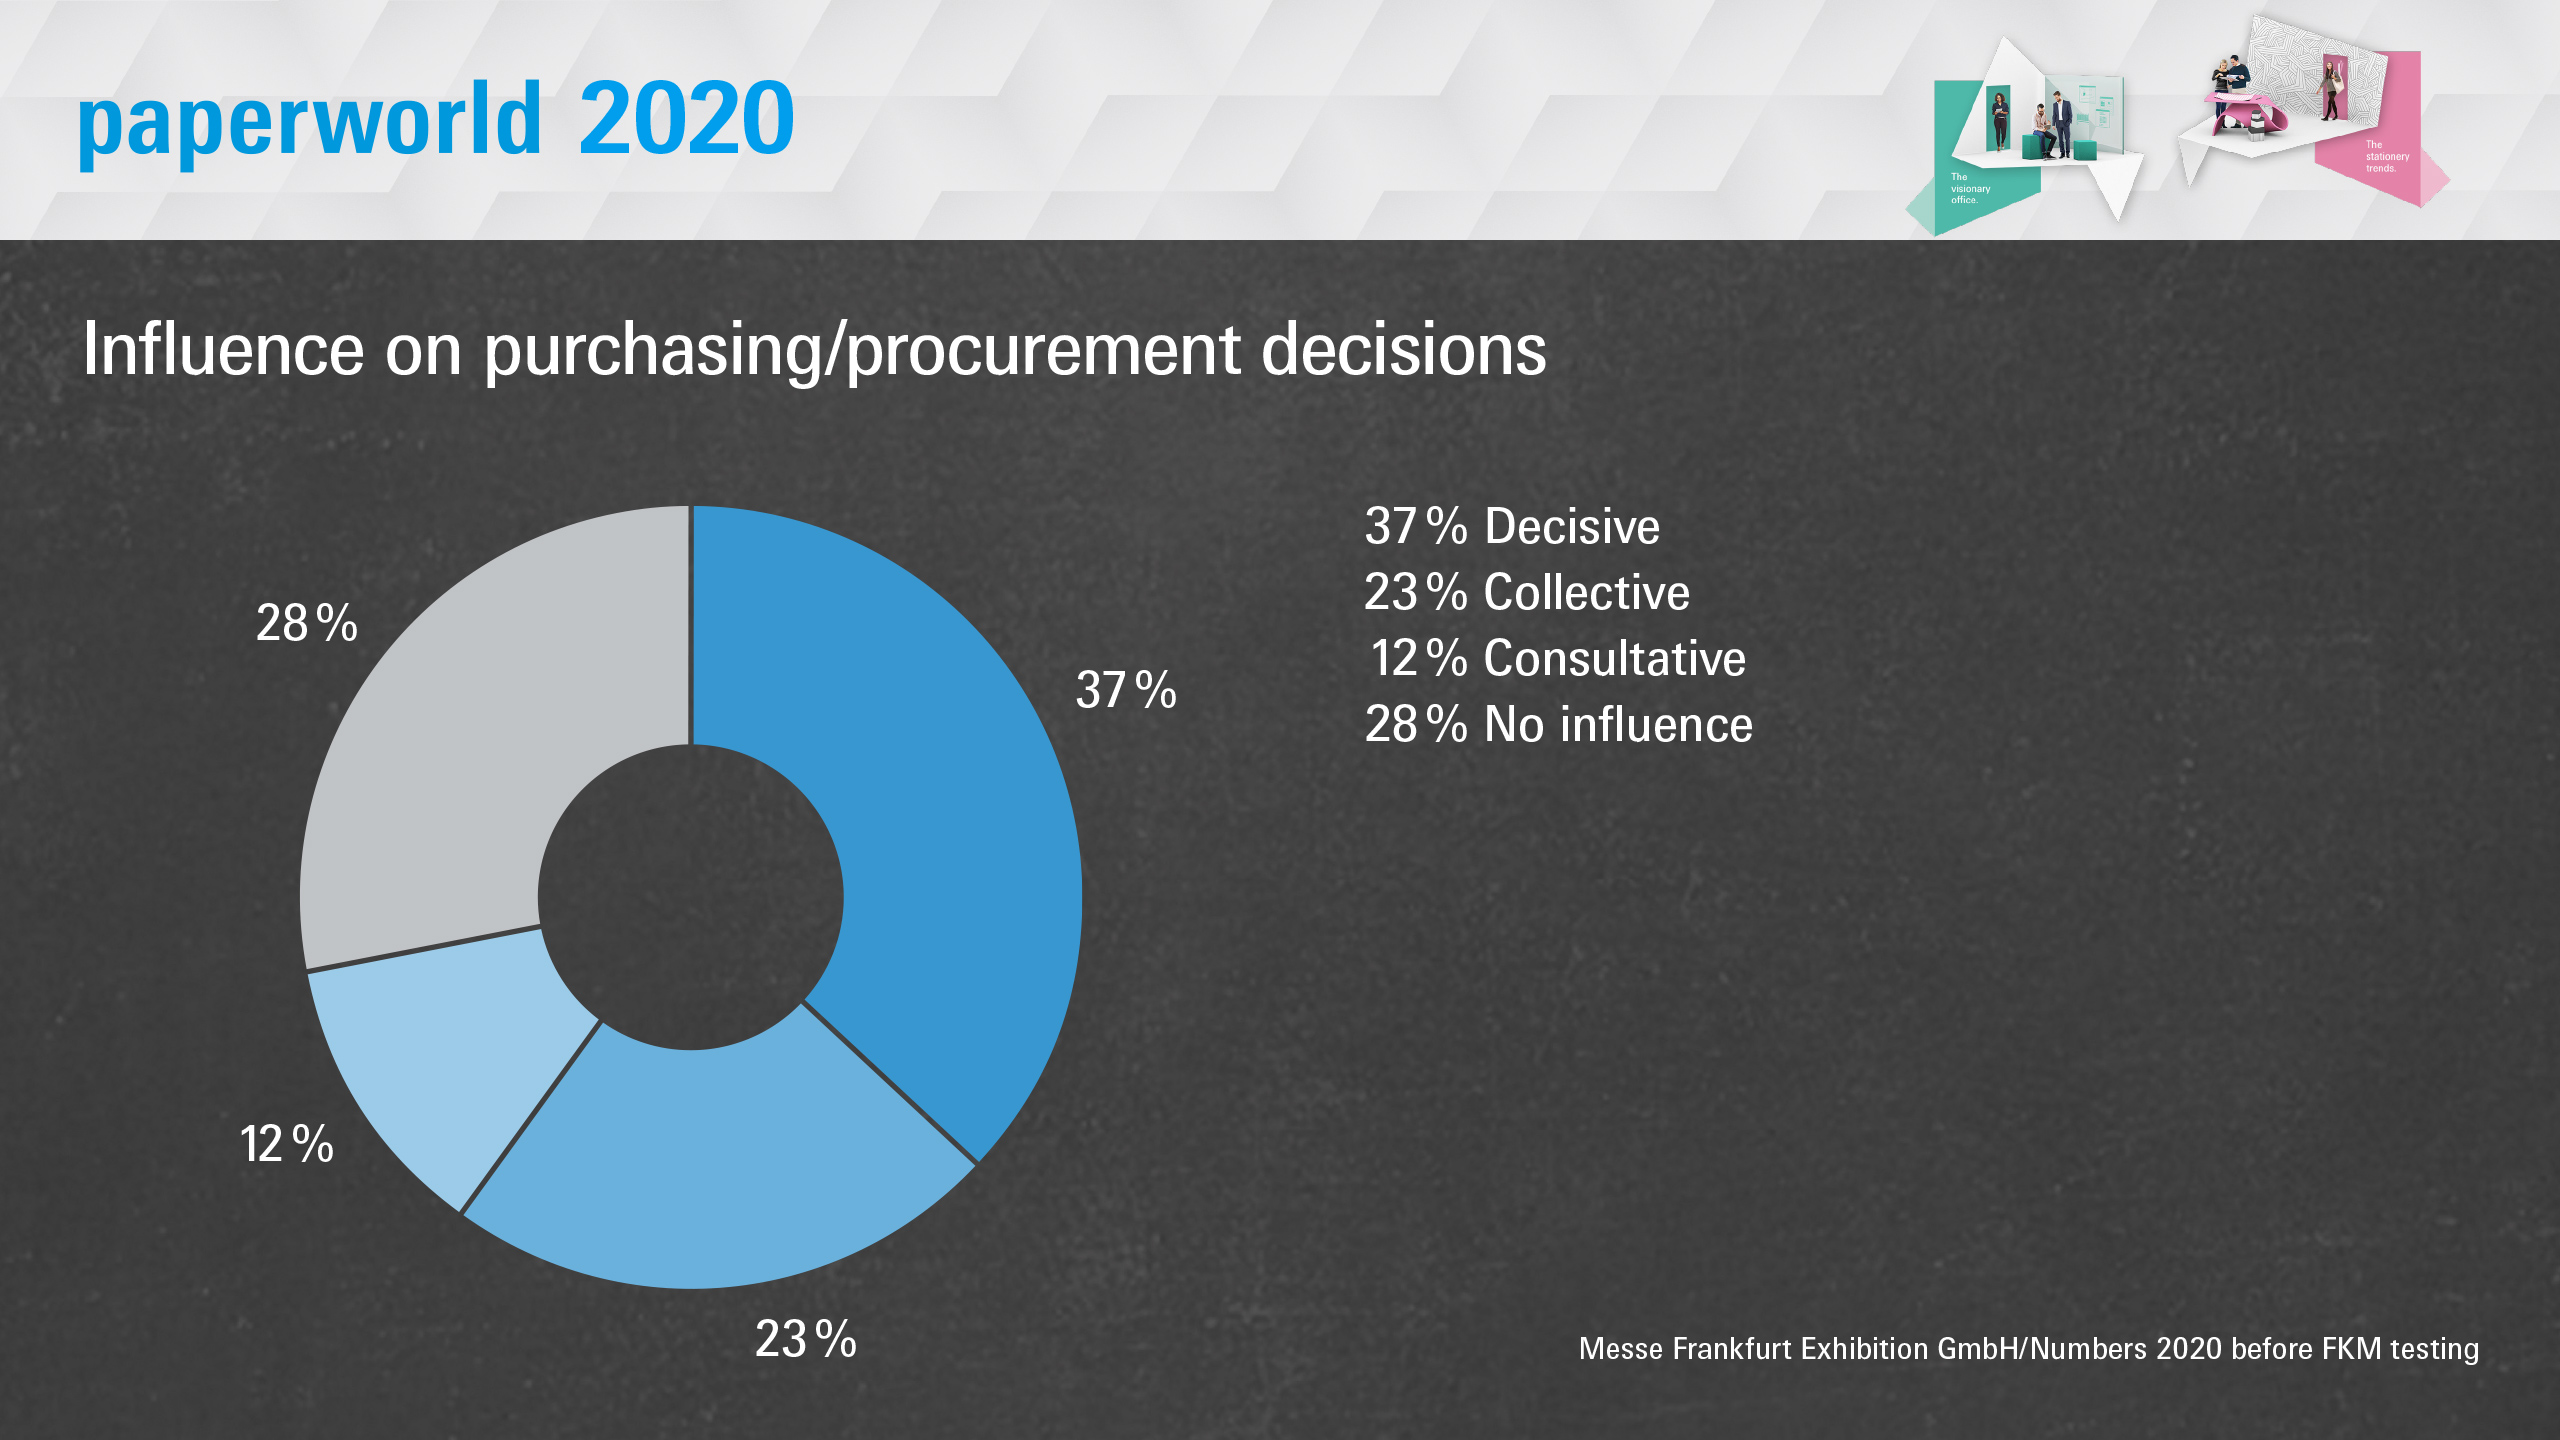 Paperworld 2020: Influence on purchasing/procurement decisions